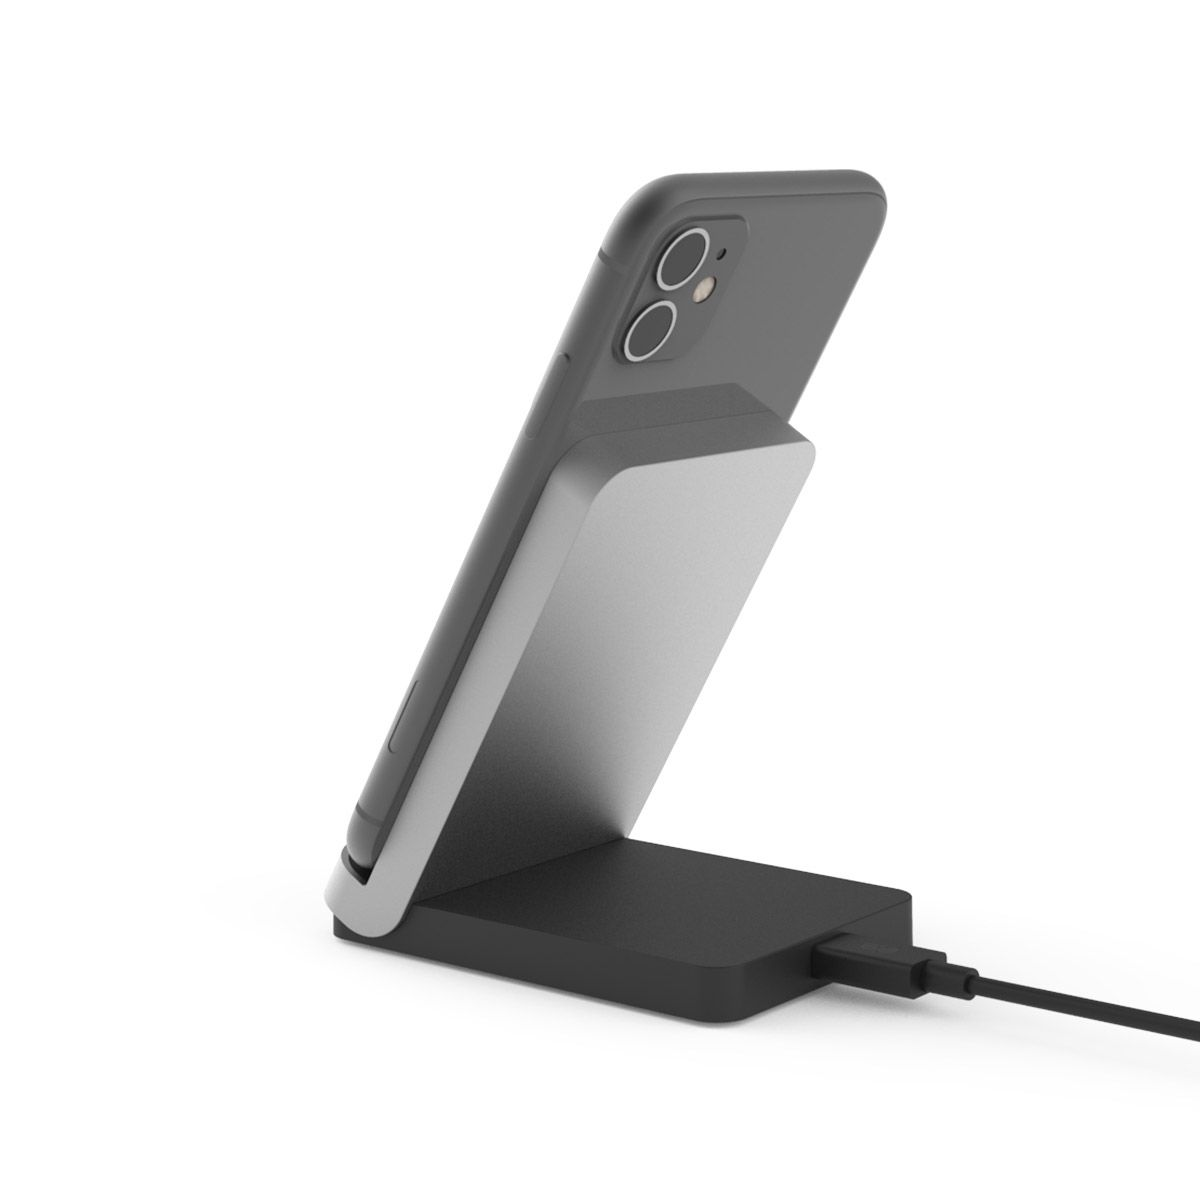 10W 2-Coil Qi Wireless Charging Stand